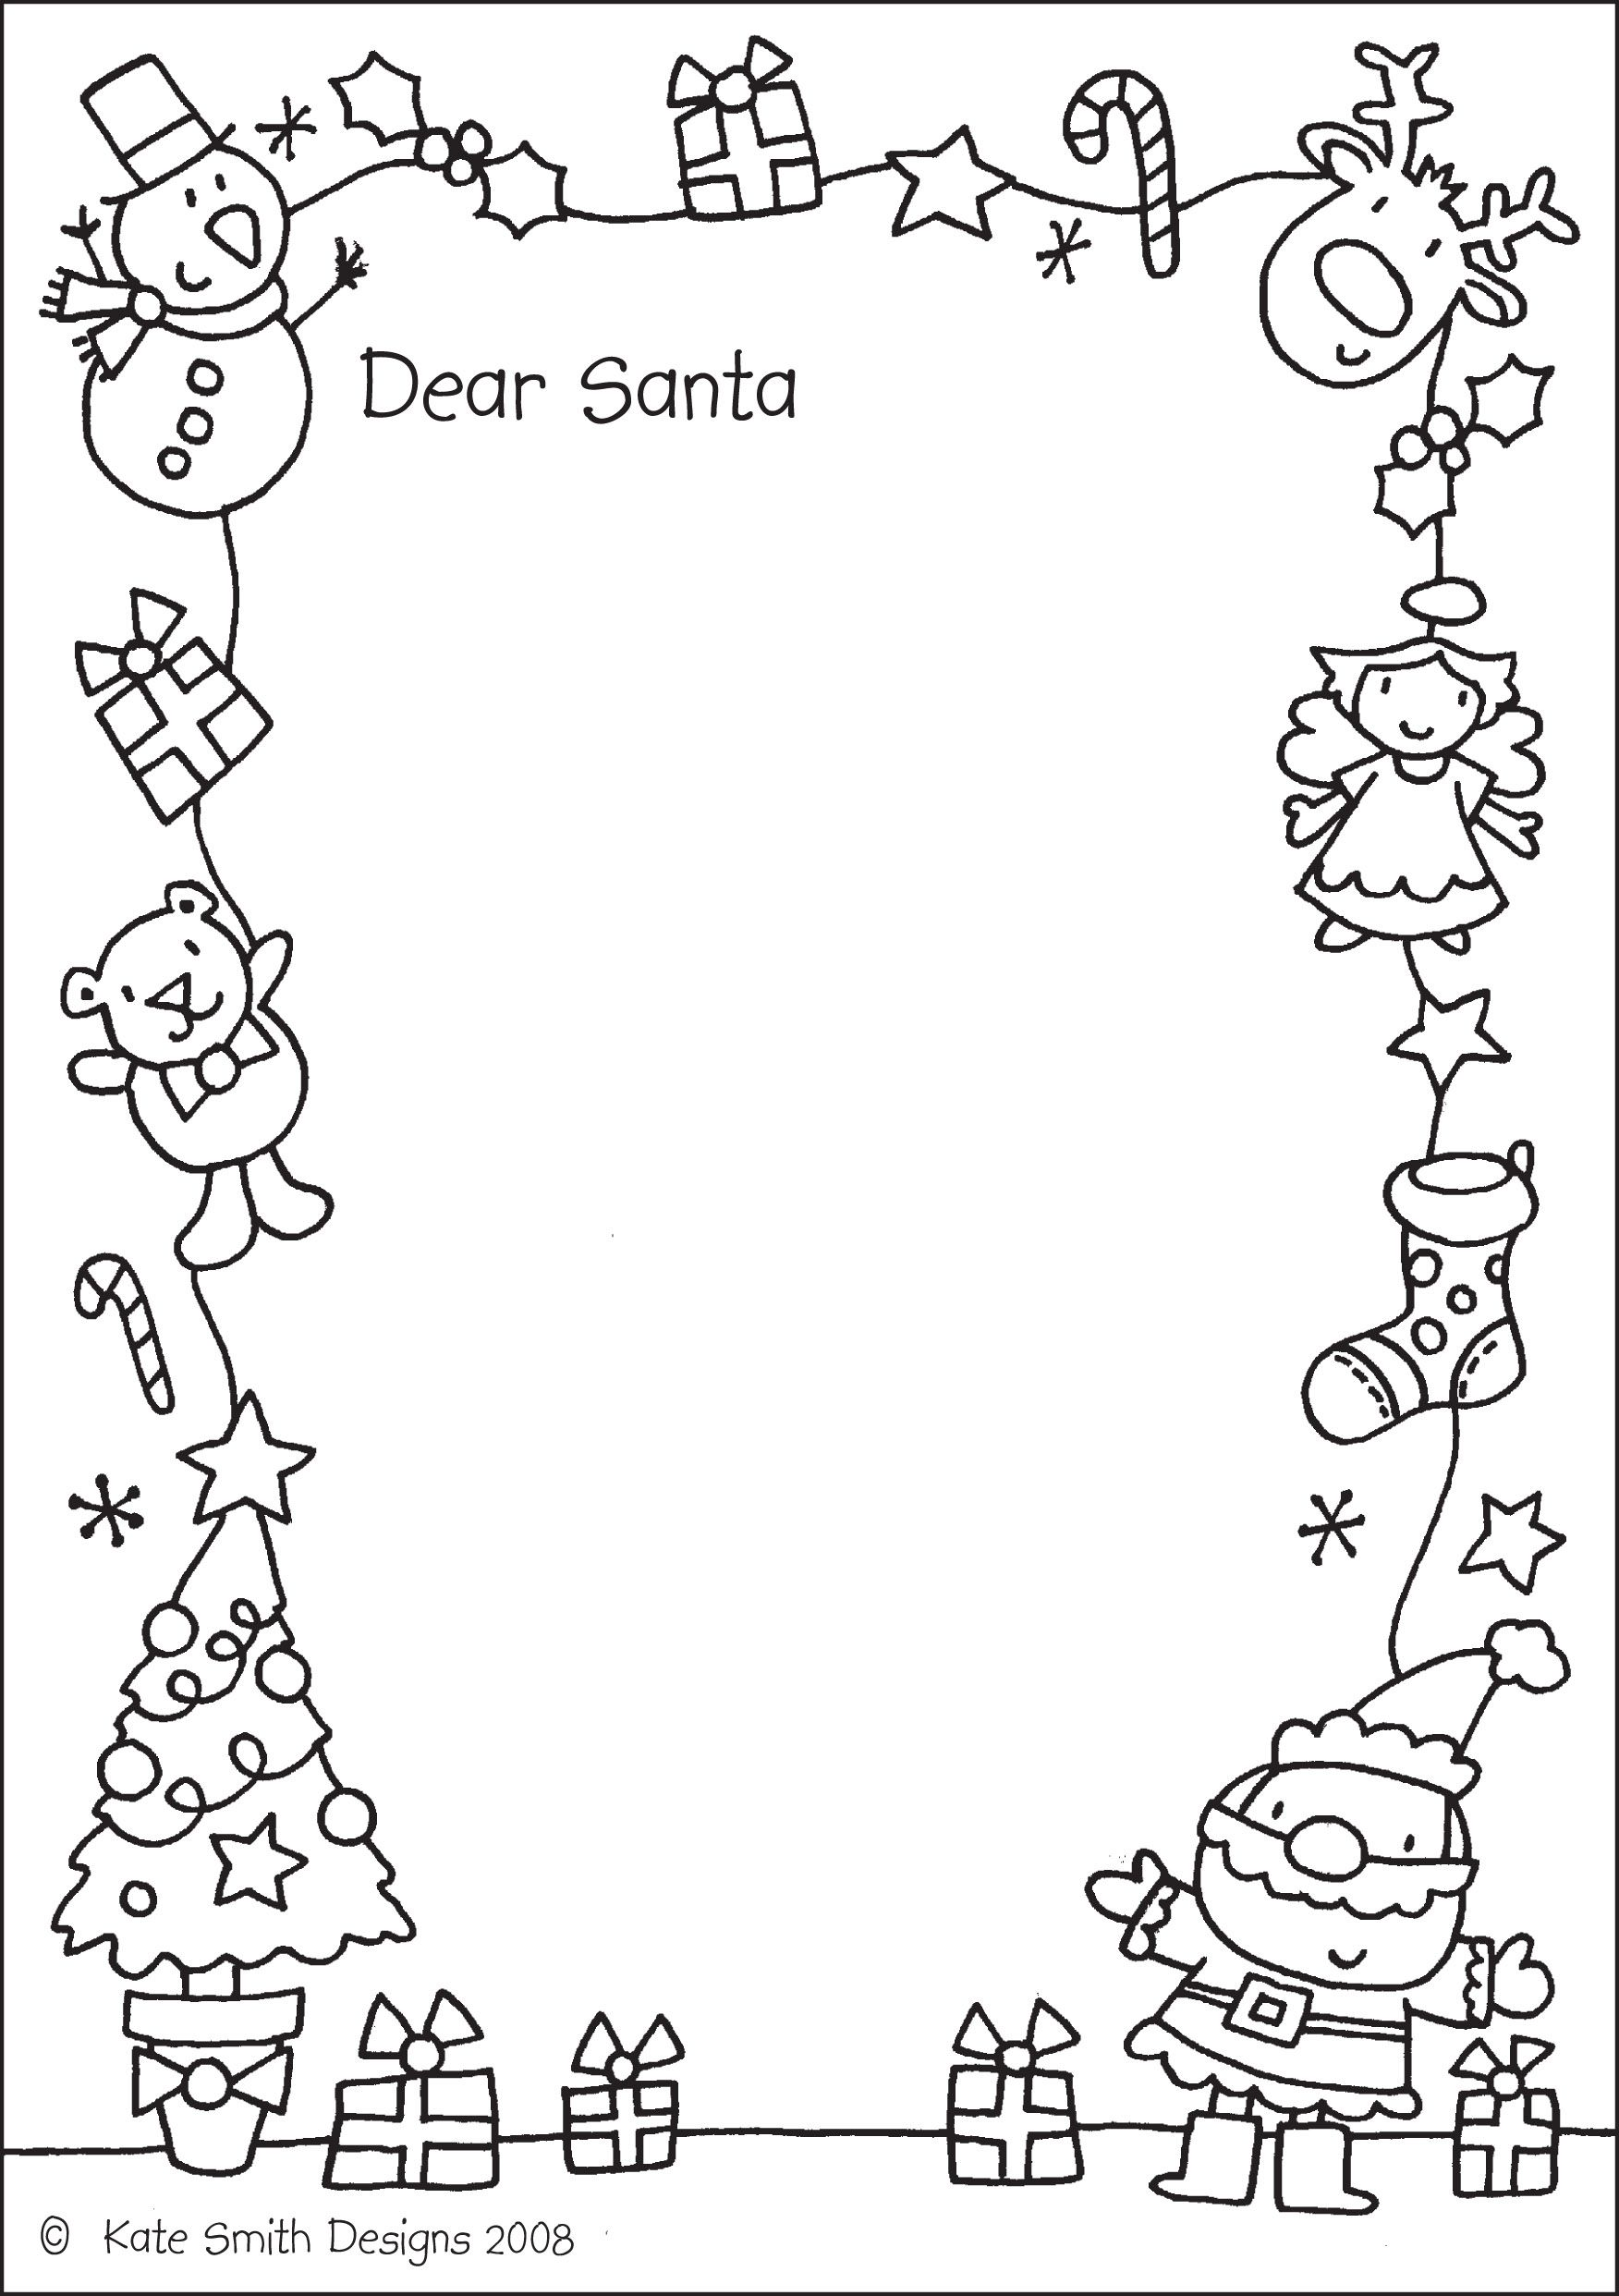 Dont to bring your letters to Santa on 12/2/12